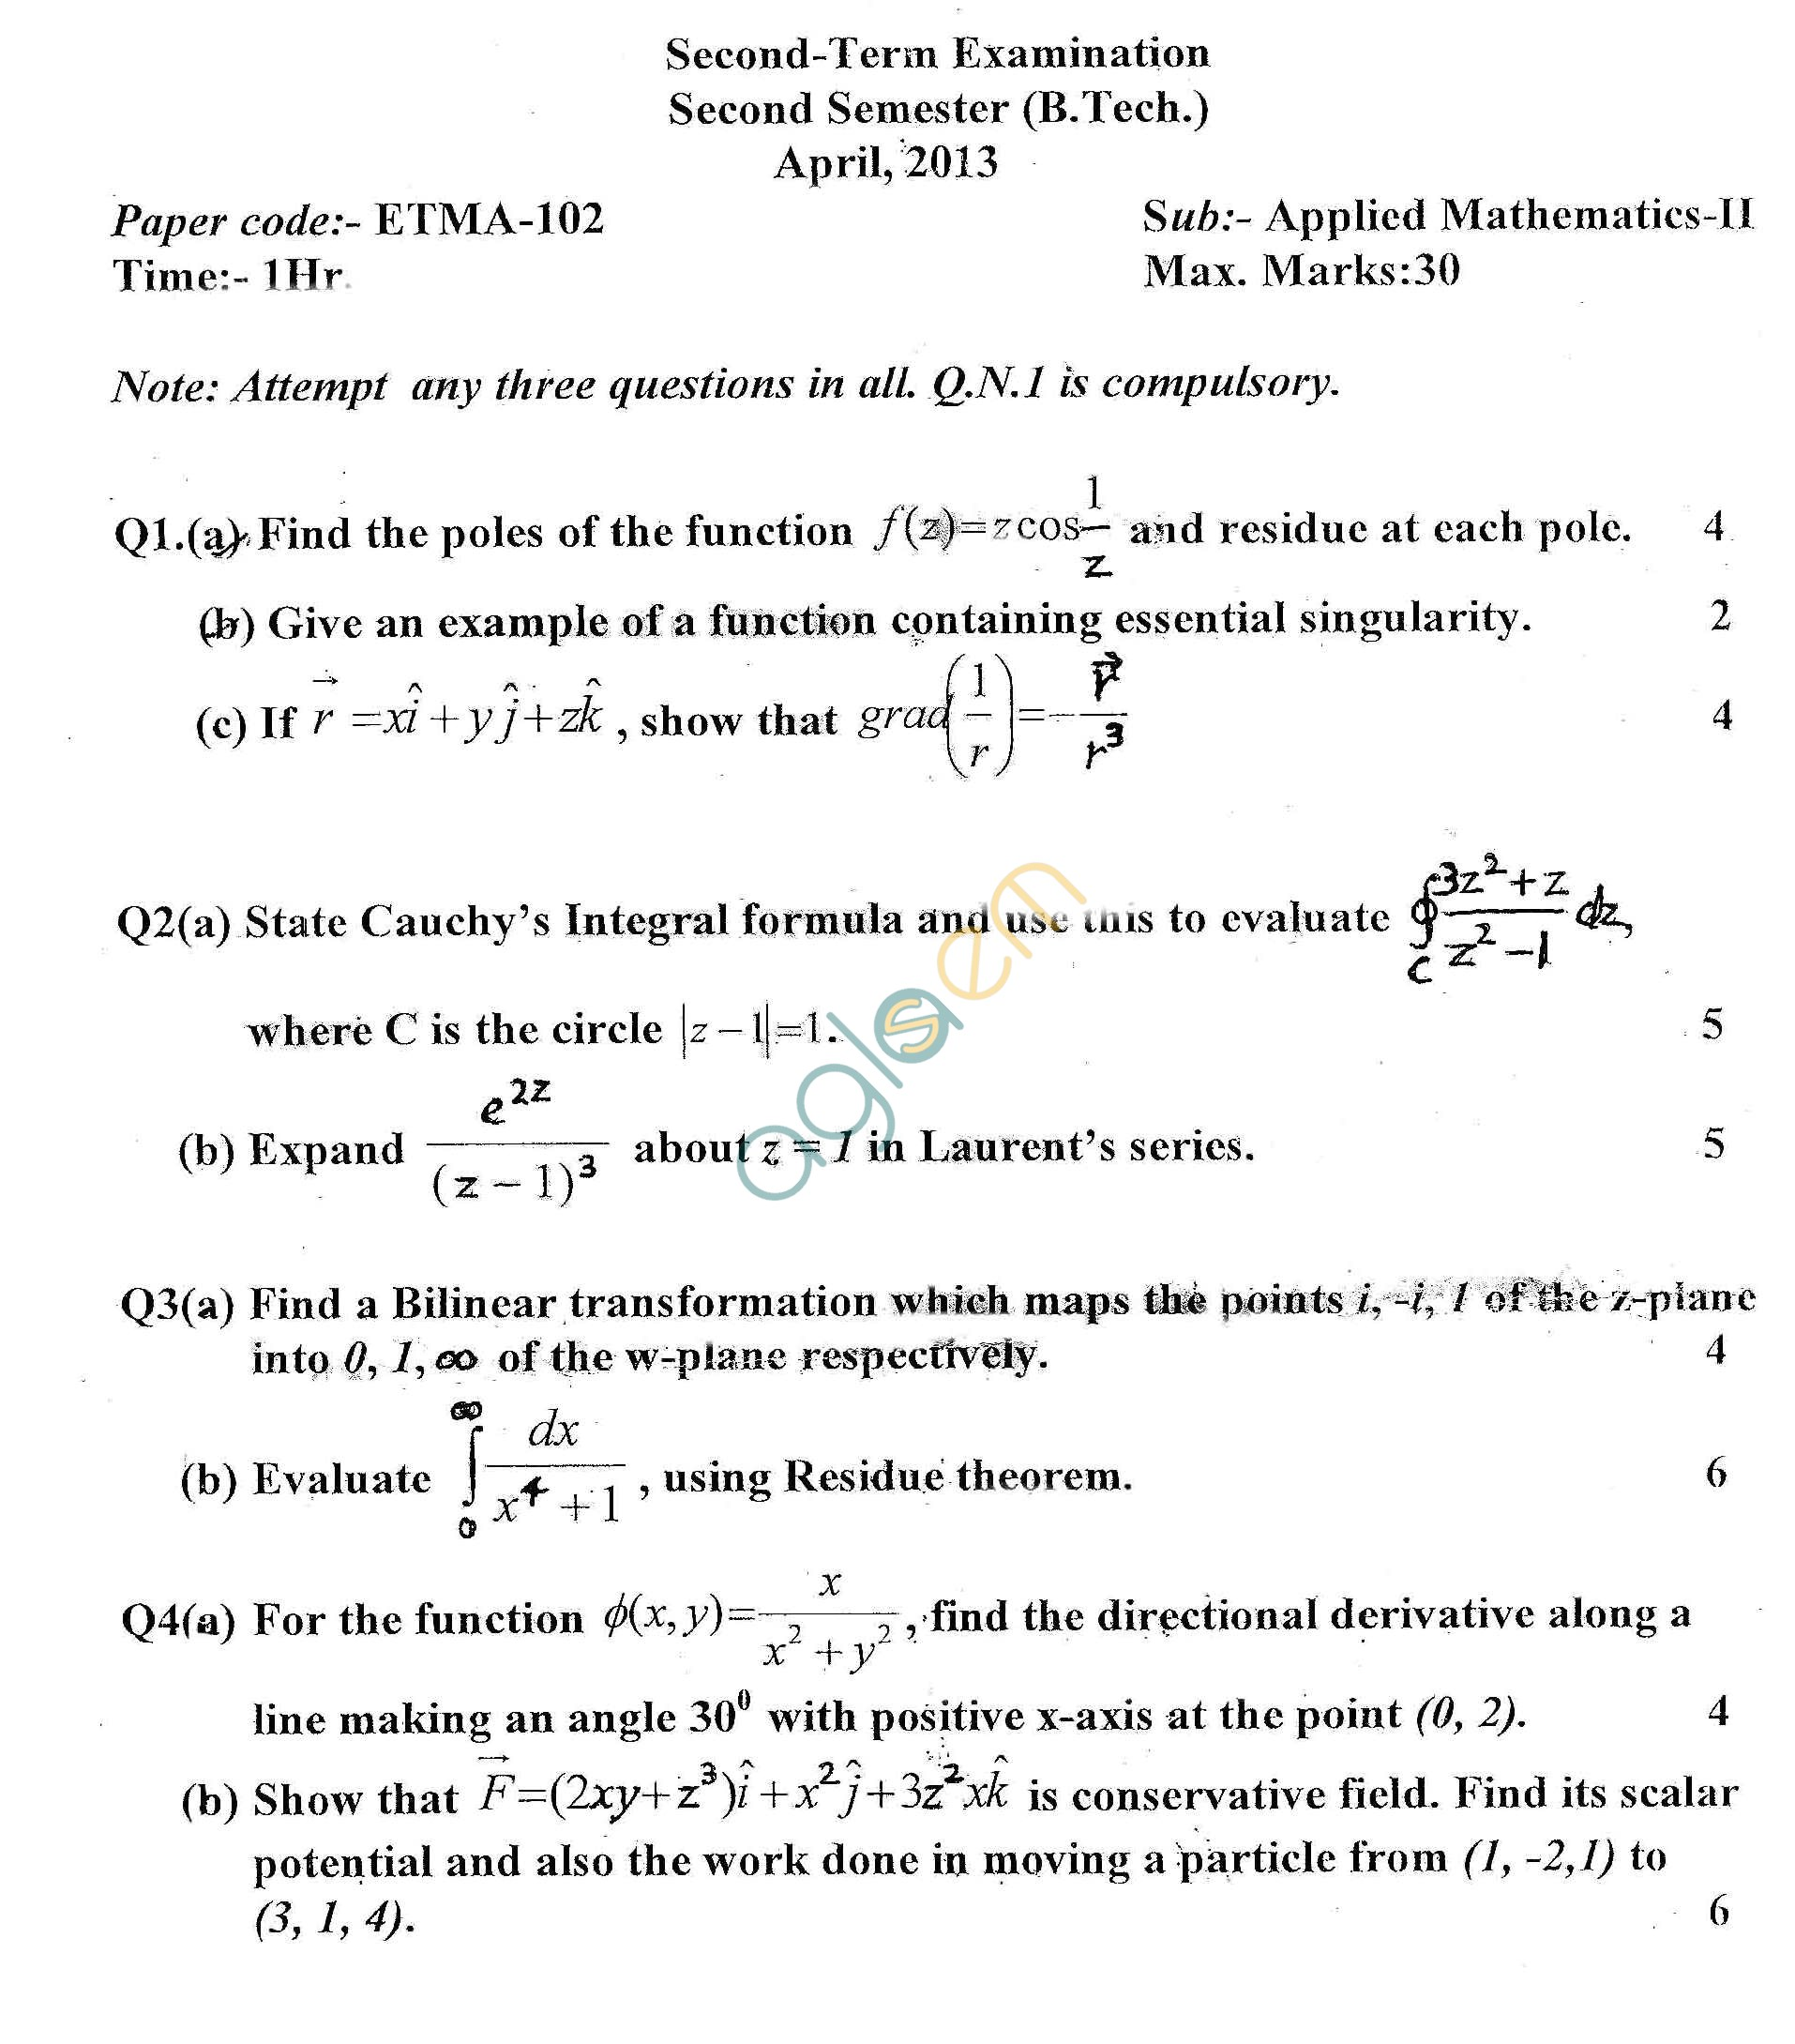 GGSIPU Question Papers Second Semester – Second Term 2013 – ETMA-102